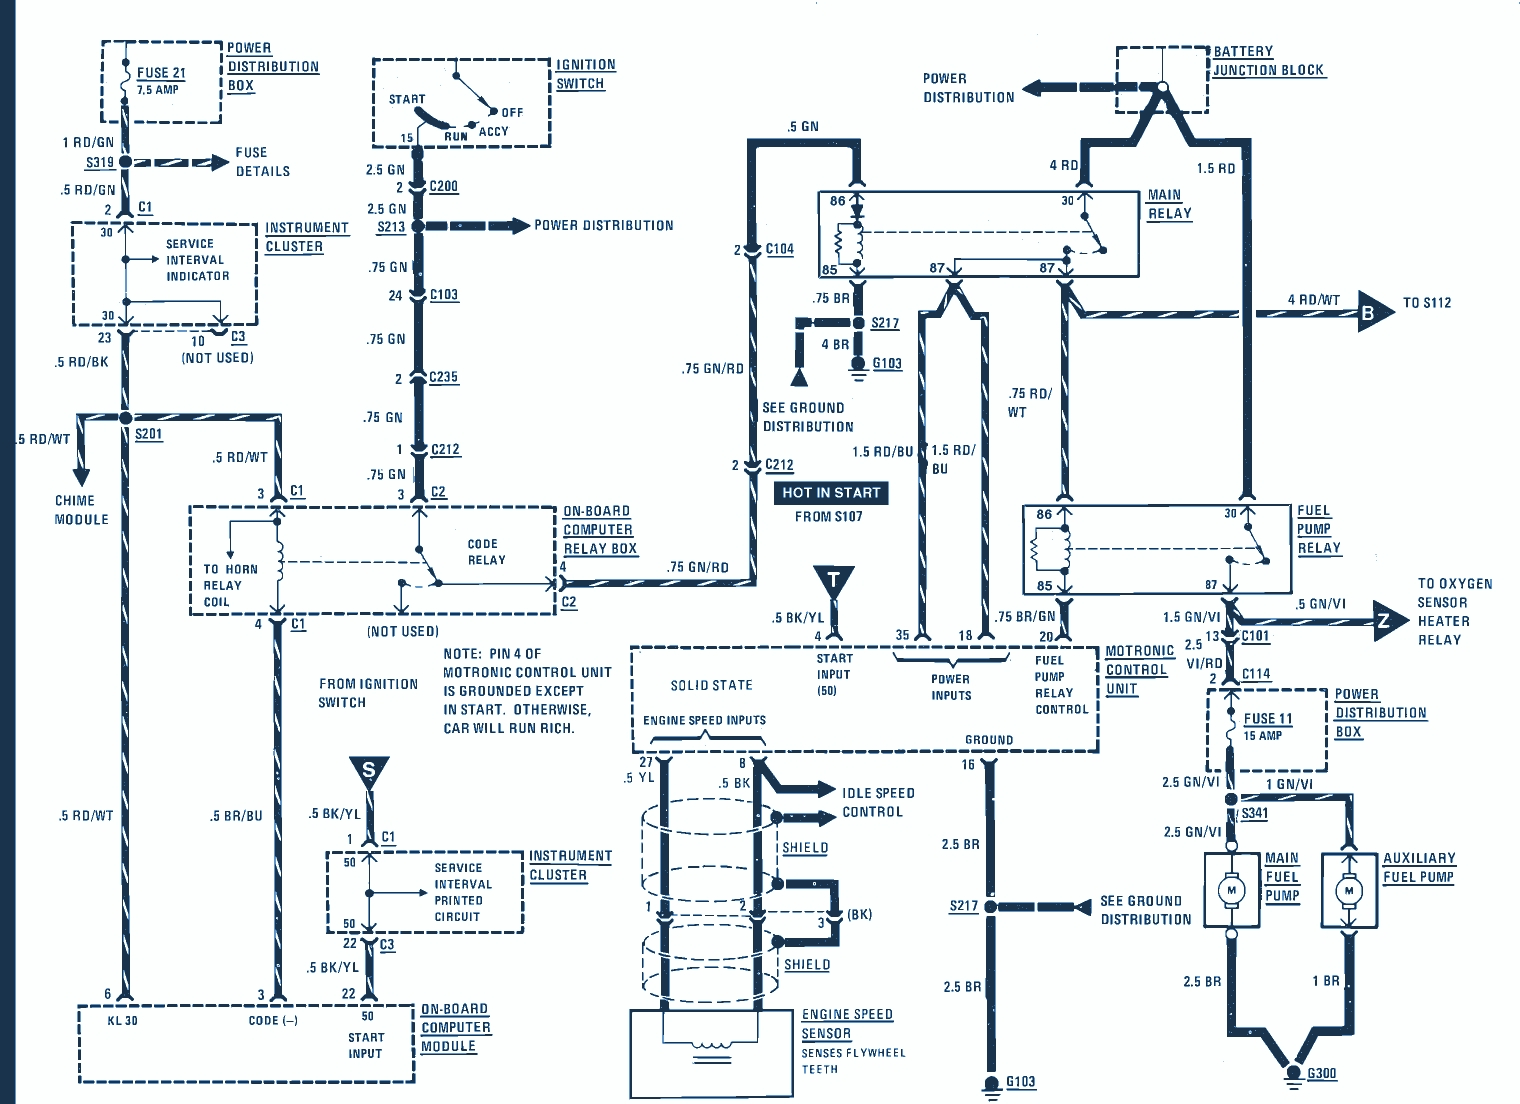 Bmw Motorcycle R1150rt Wiring Diagrams | Wiring Library